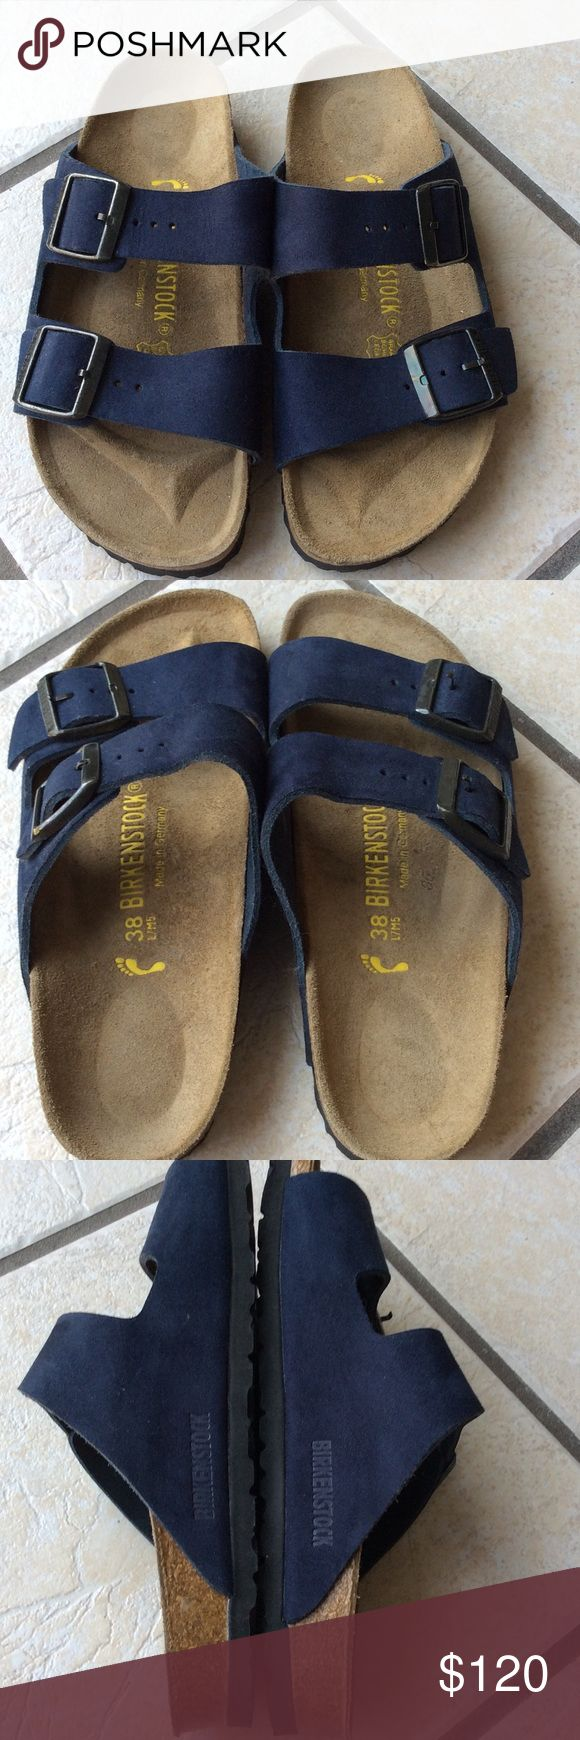 New Birkenstock Suede 2 Straps Navy Blue 38 New never worn , Nice color and style from Birkenstock, comfy and support feet. No flaws, no tear, no stain. Hard to find this color. Enjoy day with them.****NO TRADE****** Thanks Birkenstock Shoes Sandals